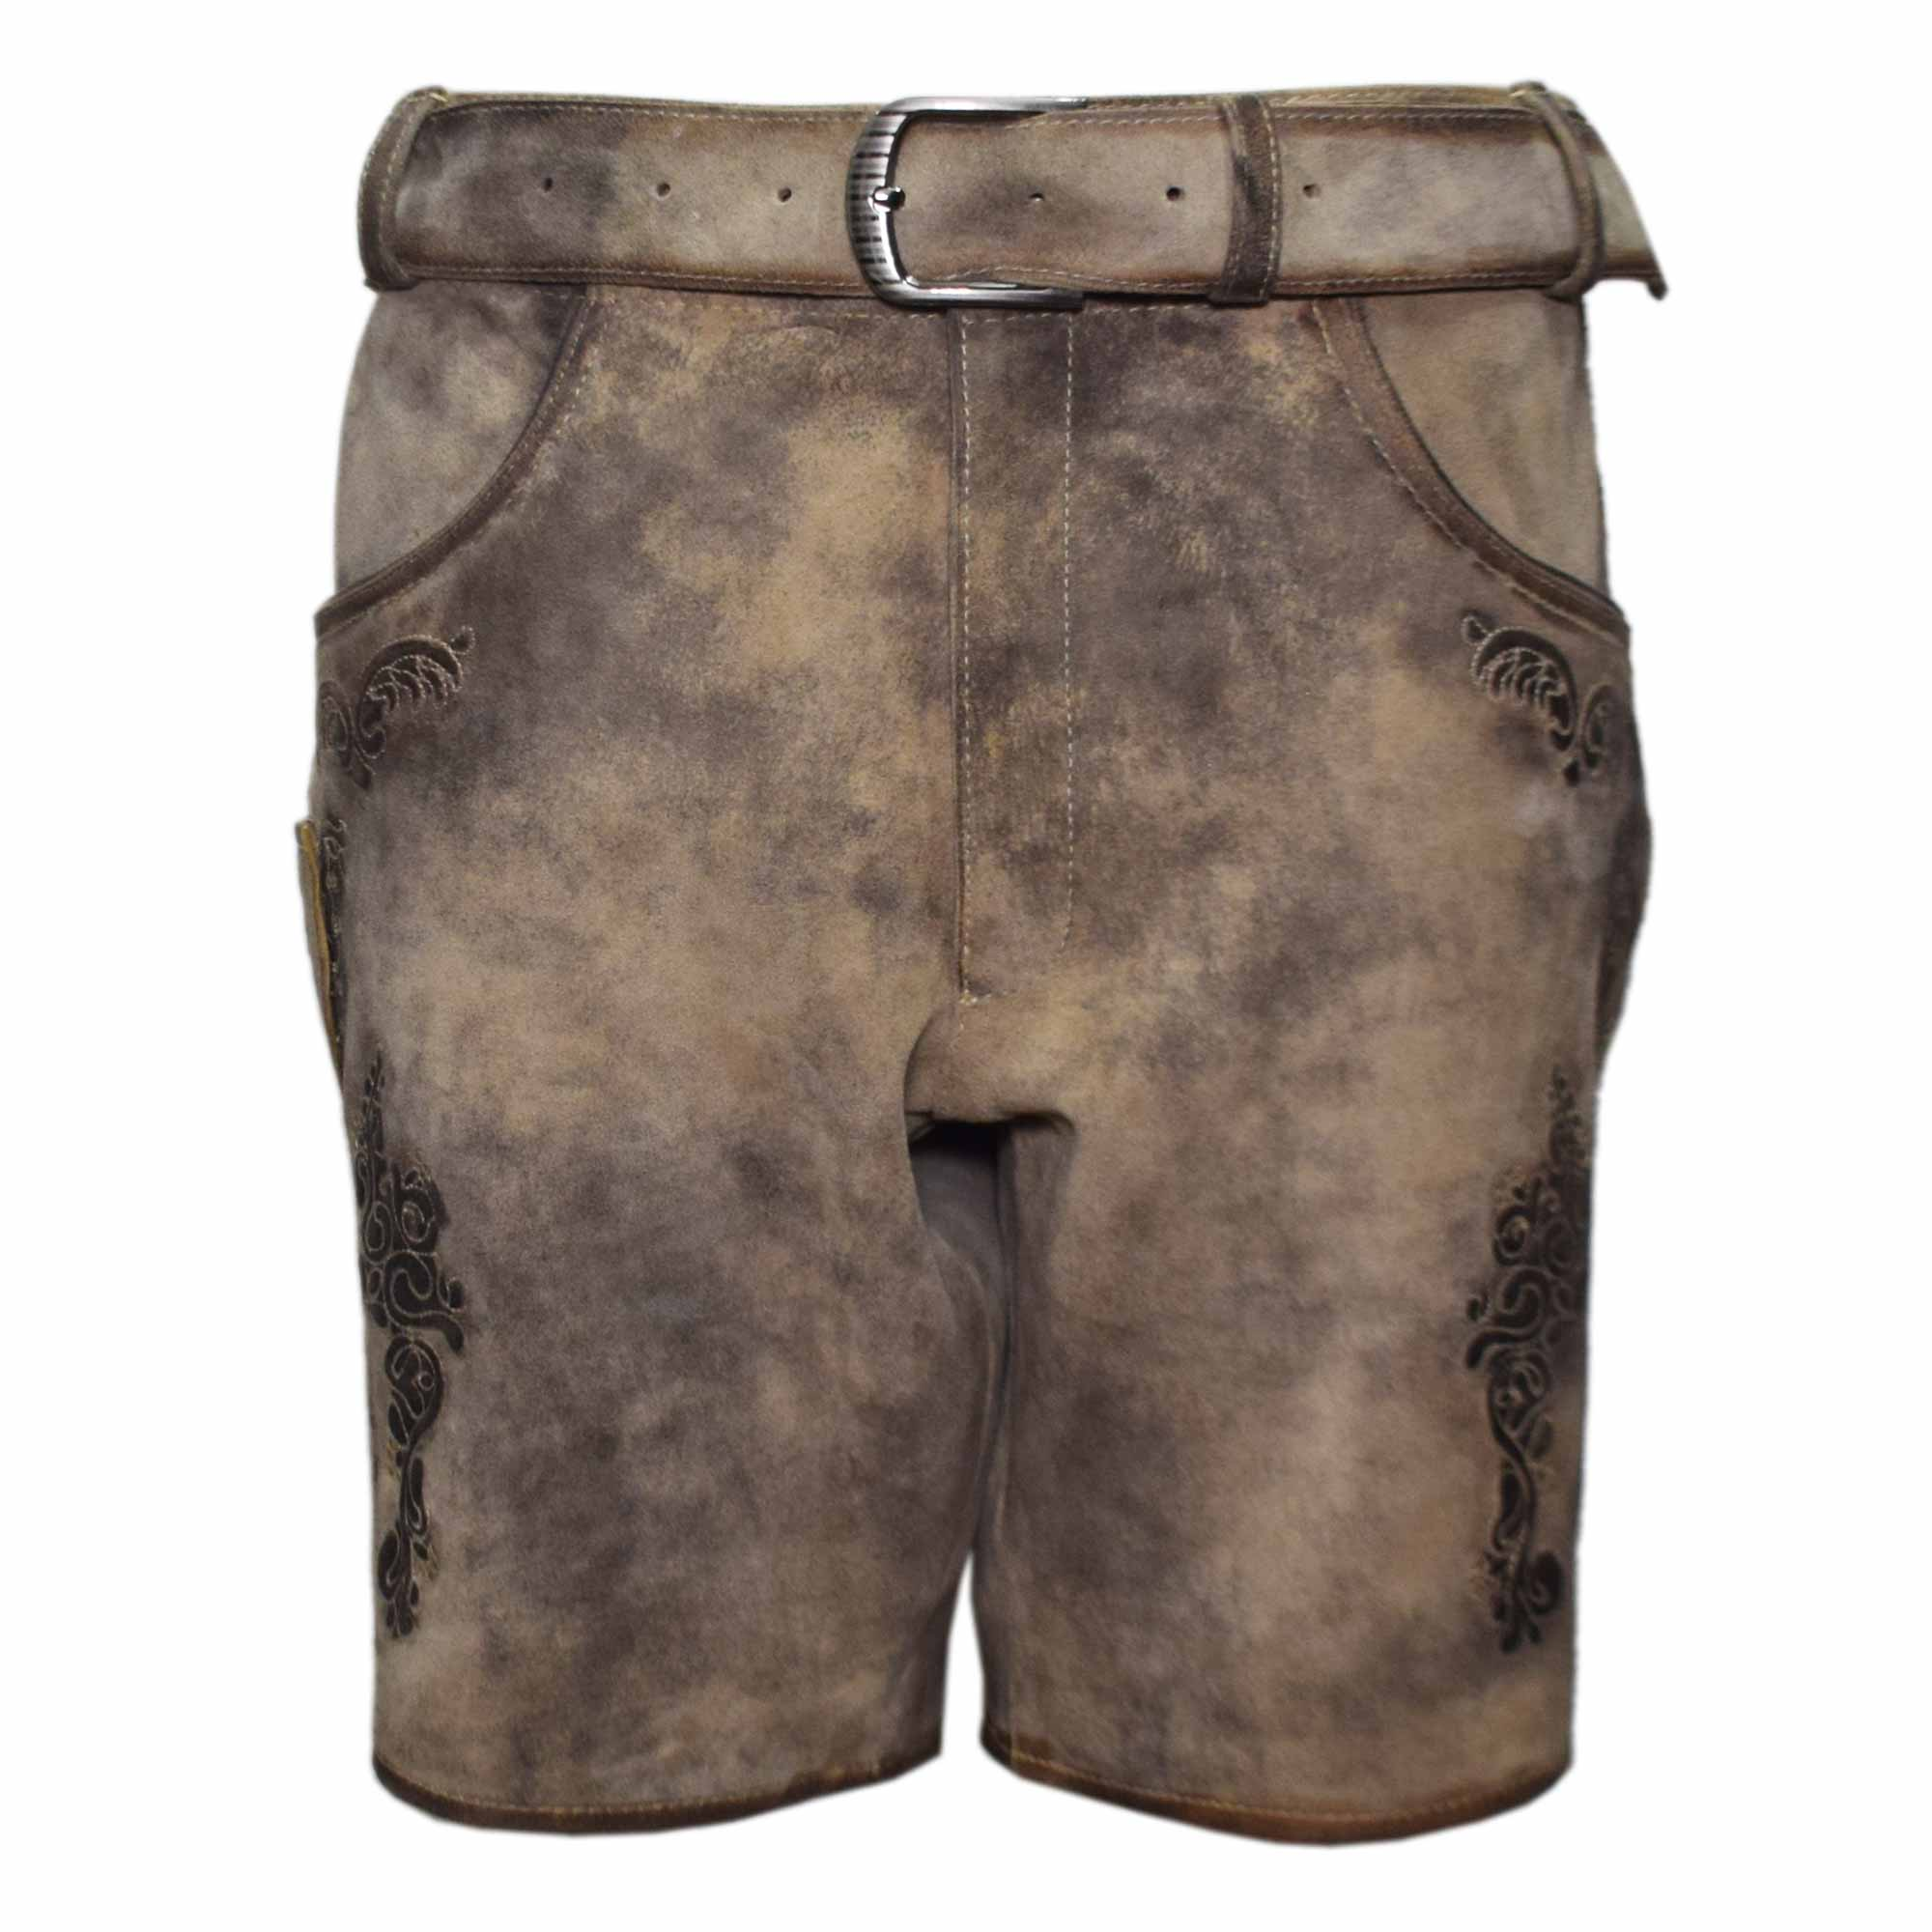 SKIN MEN SHORT LEDERHOSEN WITH ART WORK